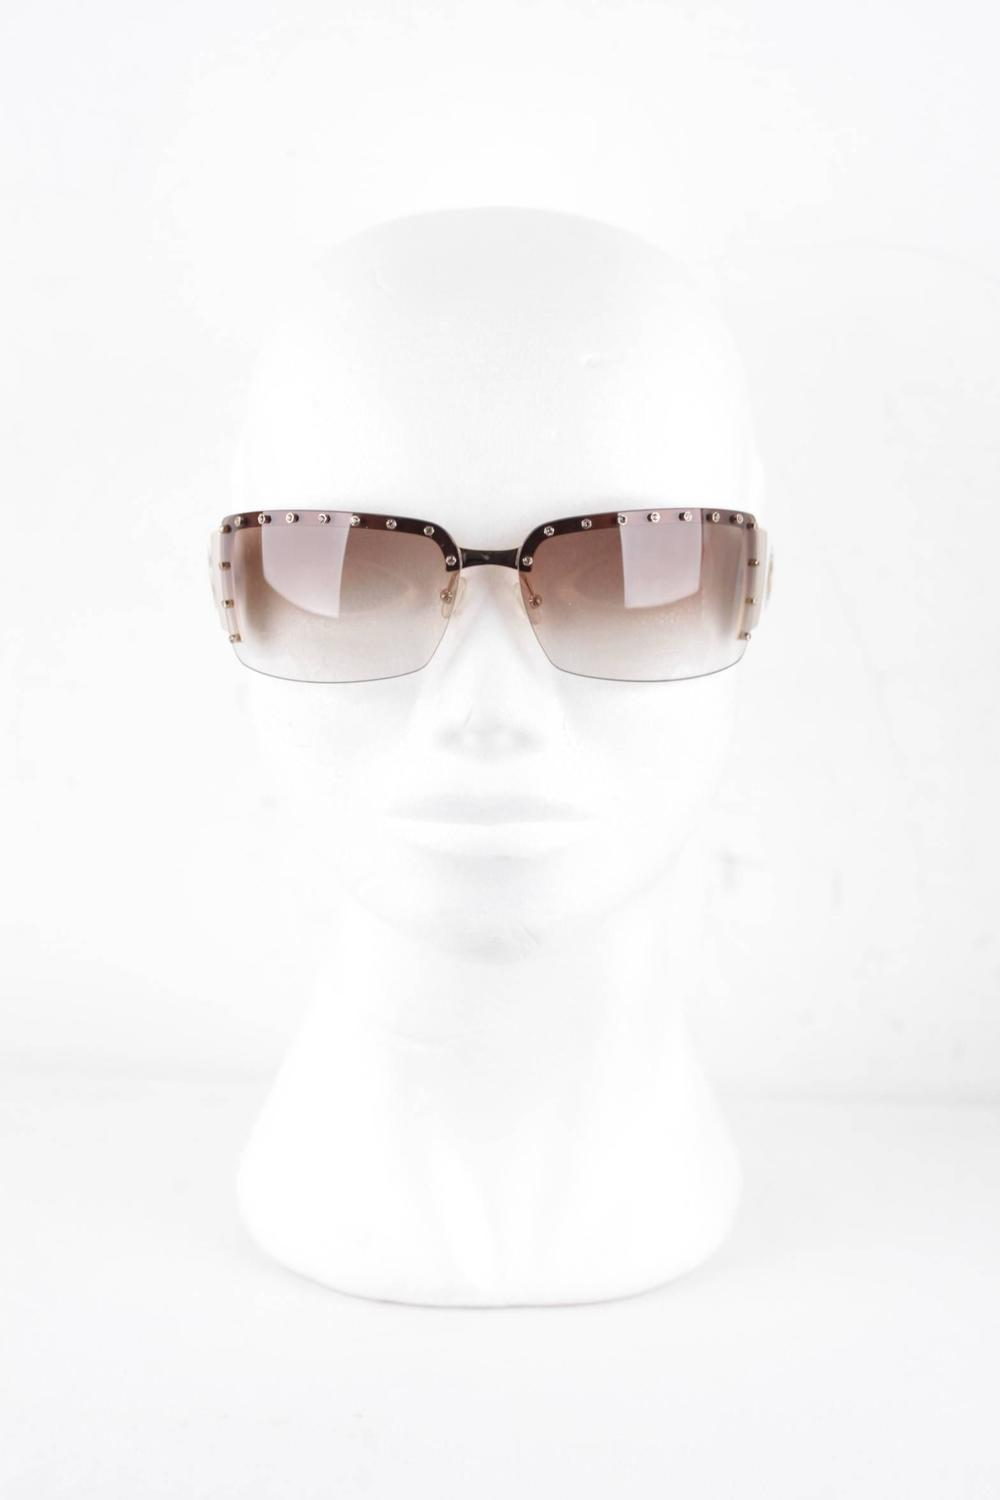 Rimless Glasses With Rhinestones : GIANFRANCO FERRE Rimless SUNGLASSES GF81301 71/14 Shades w ...